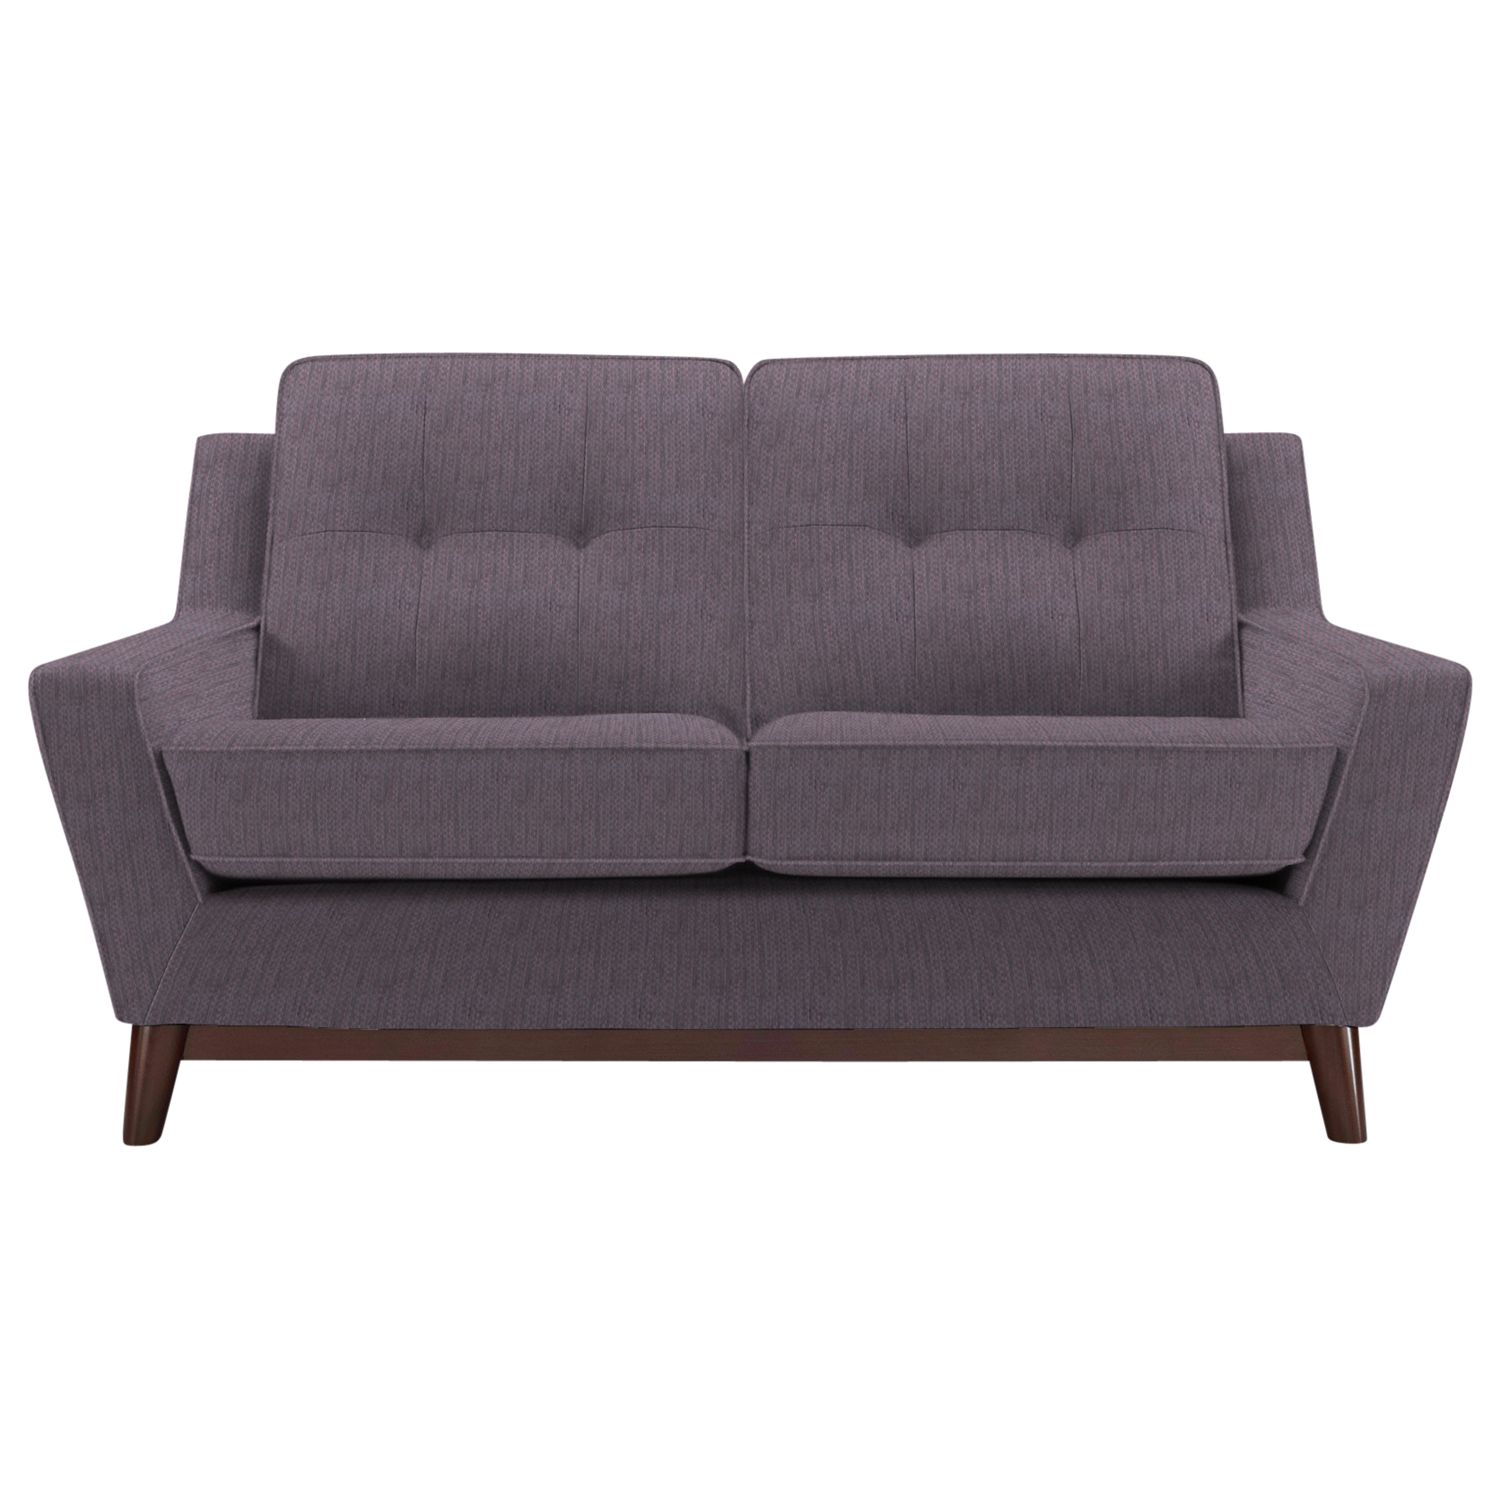 G Plan Vintage The Fifty Three Small Sofa, Weave Plum